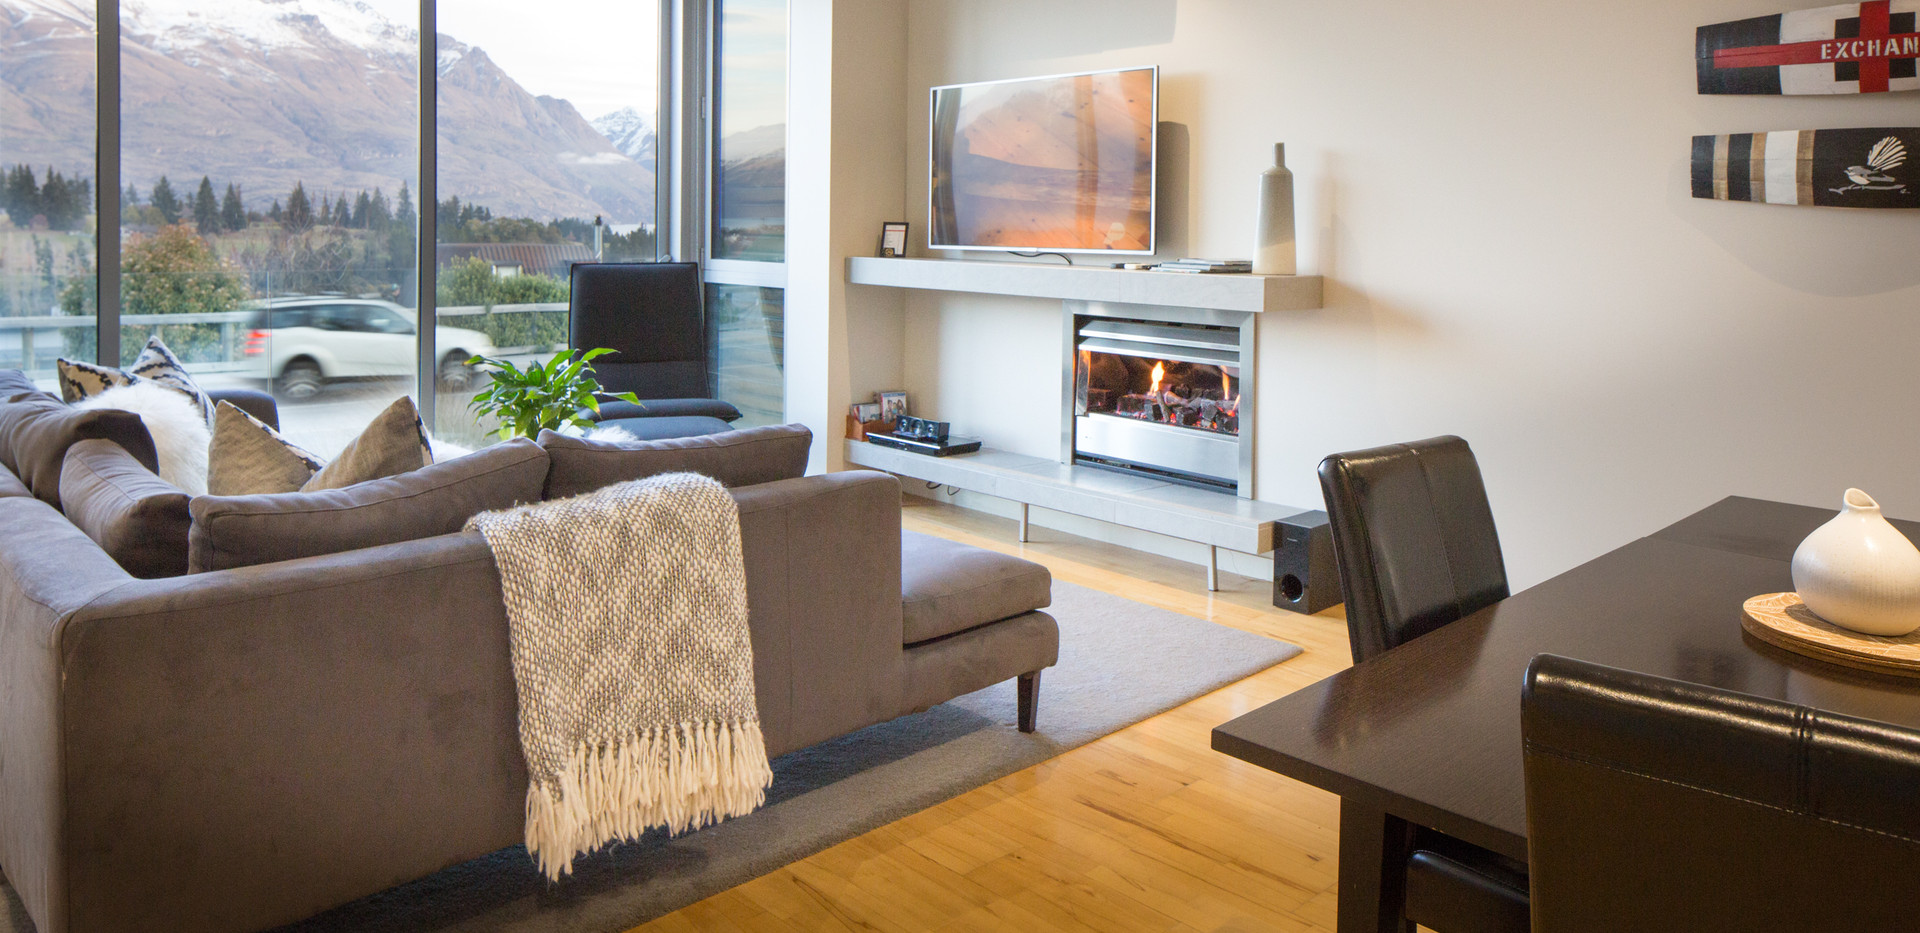 QS Jade 216 ExclusiveJade: 2 Bedroom Lake View Apartment, Queenstown Stays